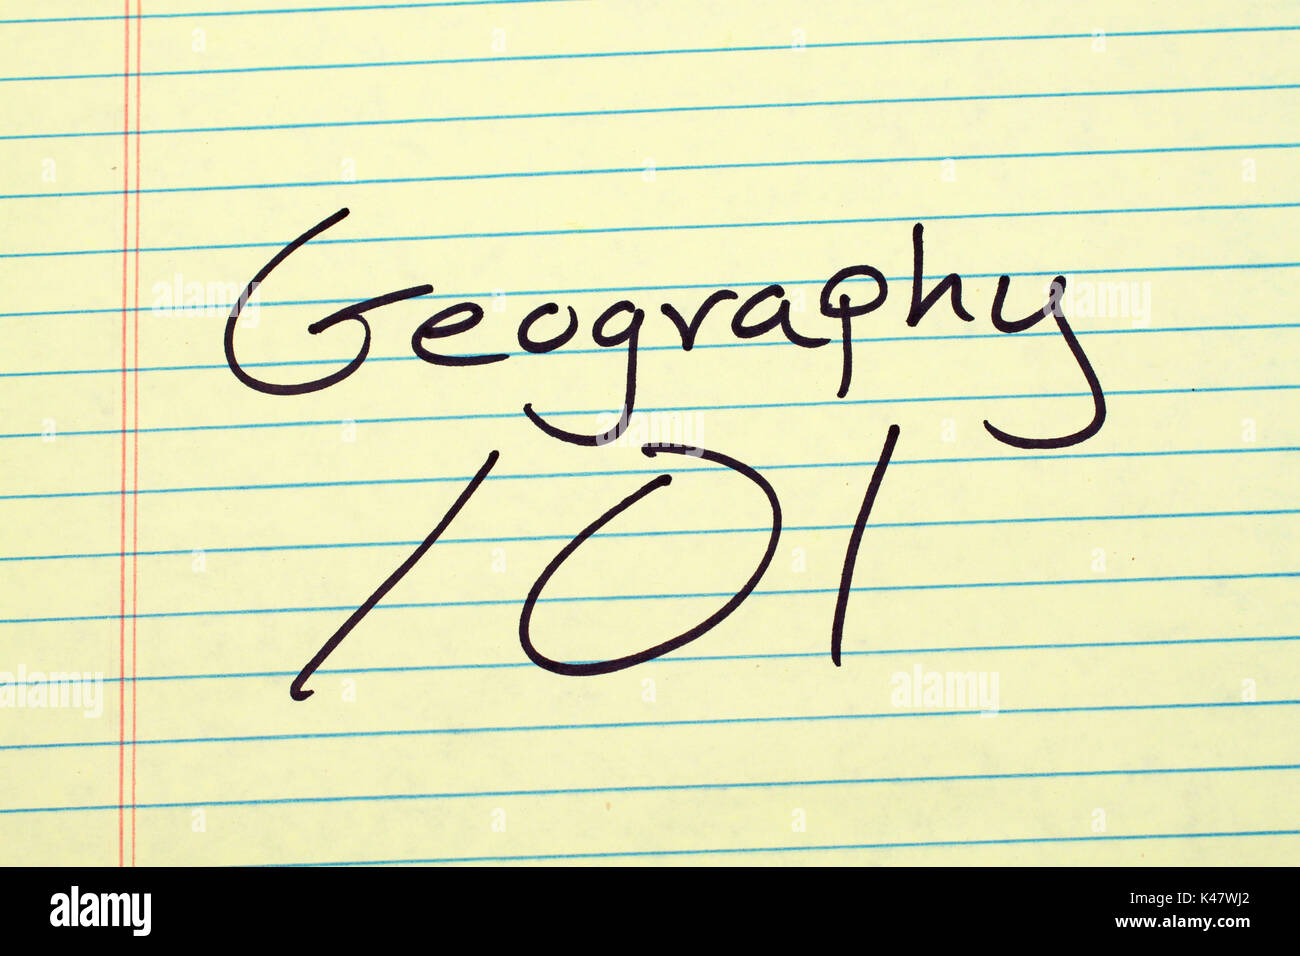 The words 'Geography 101' on a yellow legal pad - Stock Image